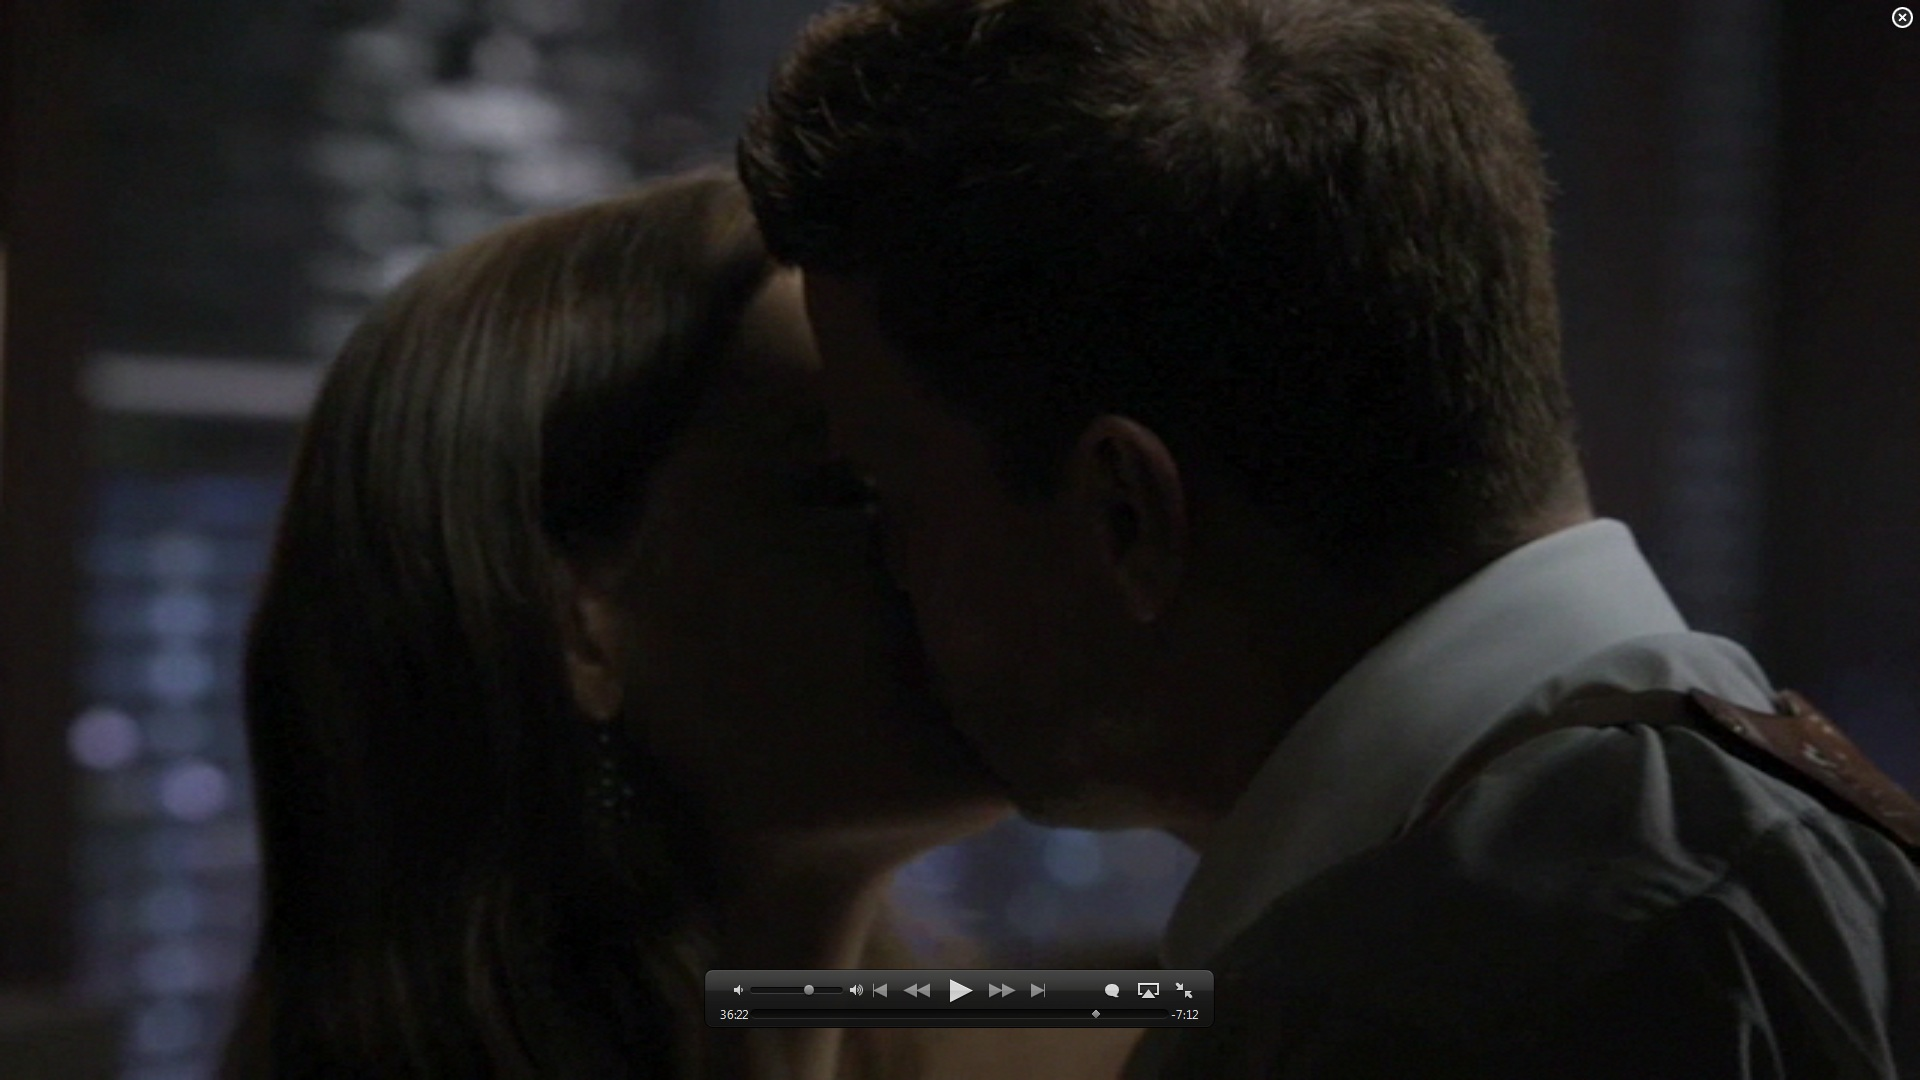 7x01 kiss booth and bones image 26582082 fanpop